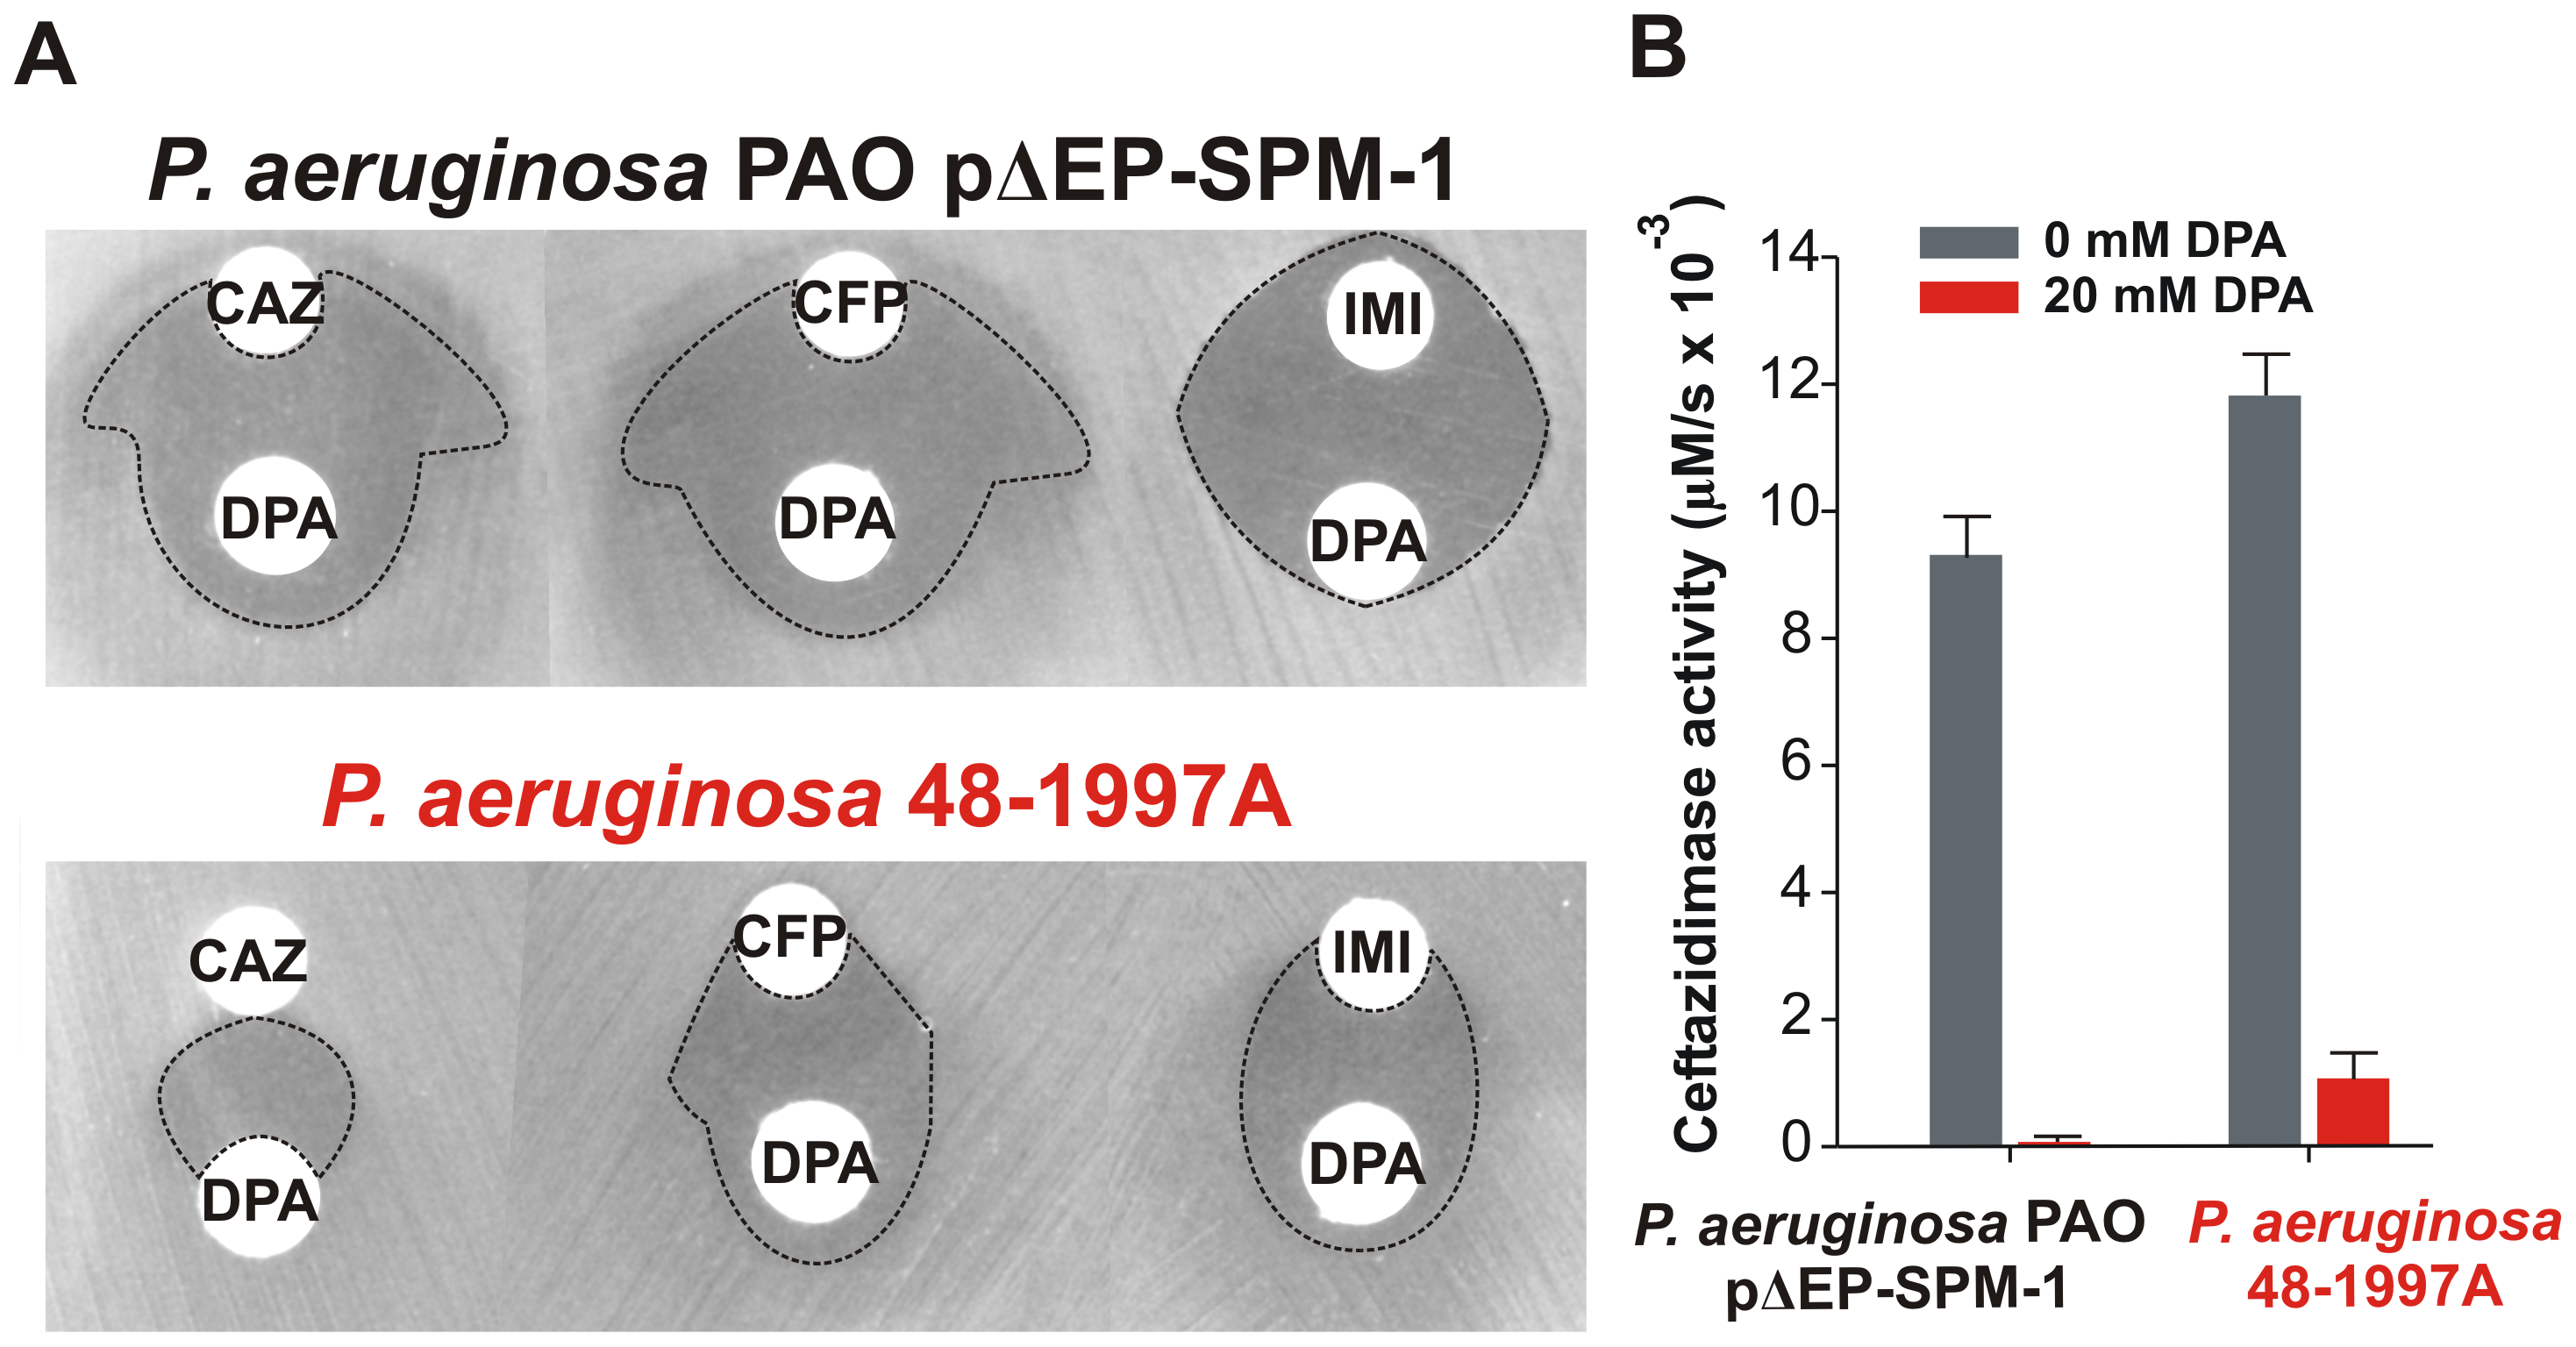 (A) Antibiograms of <i>P. aeruginosa</i> PAO pΔEP-SPM-1 and <i>P. aeruginosa</i> 48-1997A against disks embedded with 30 µg ceftazidime (CAZ), 30 µg cefepime (CFP) and 10 µg imipenem (IMI), alone or faced to 1.5 mg dipicolinic acid (DPA) containing disks.